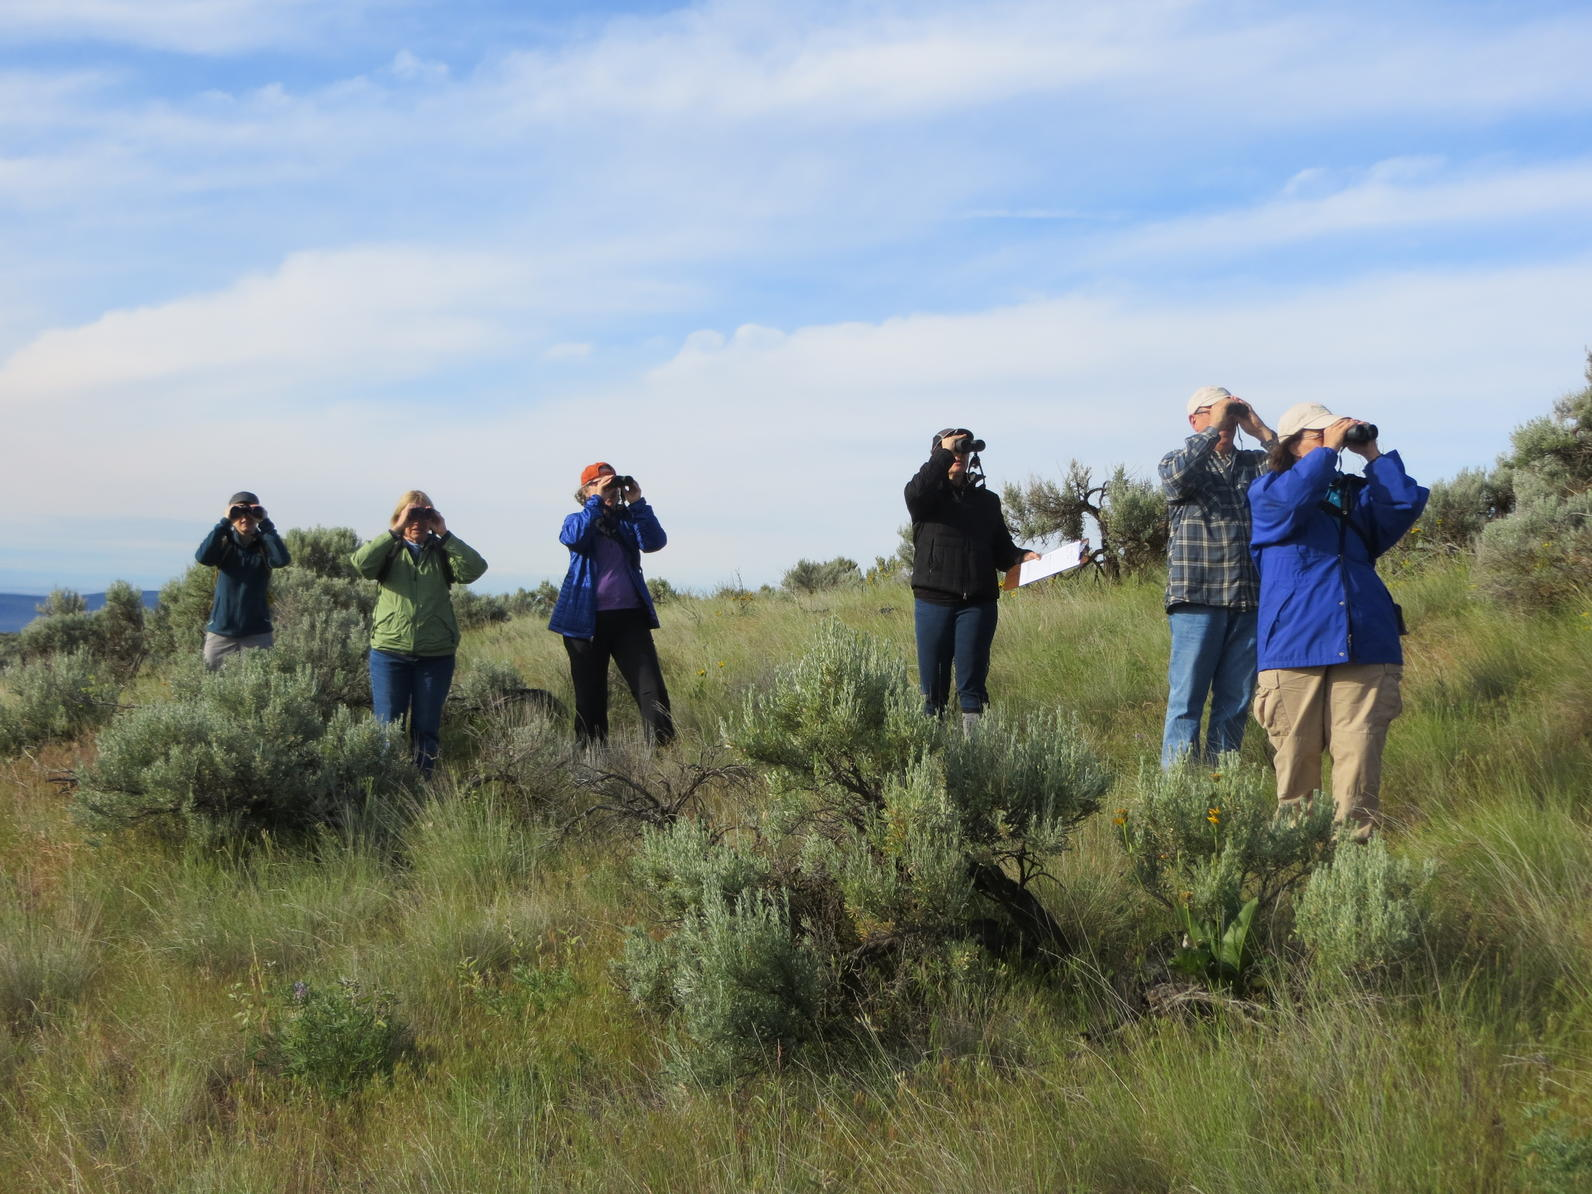 5 Fire Tips for Birding in Sage Country - By Audubon Washington